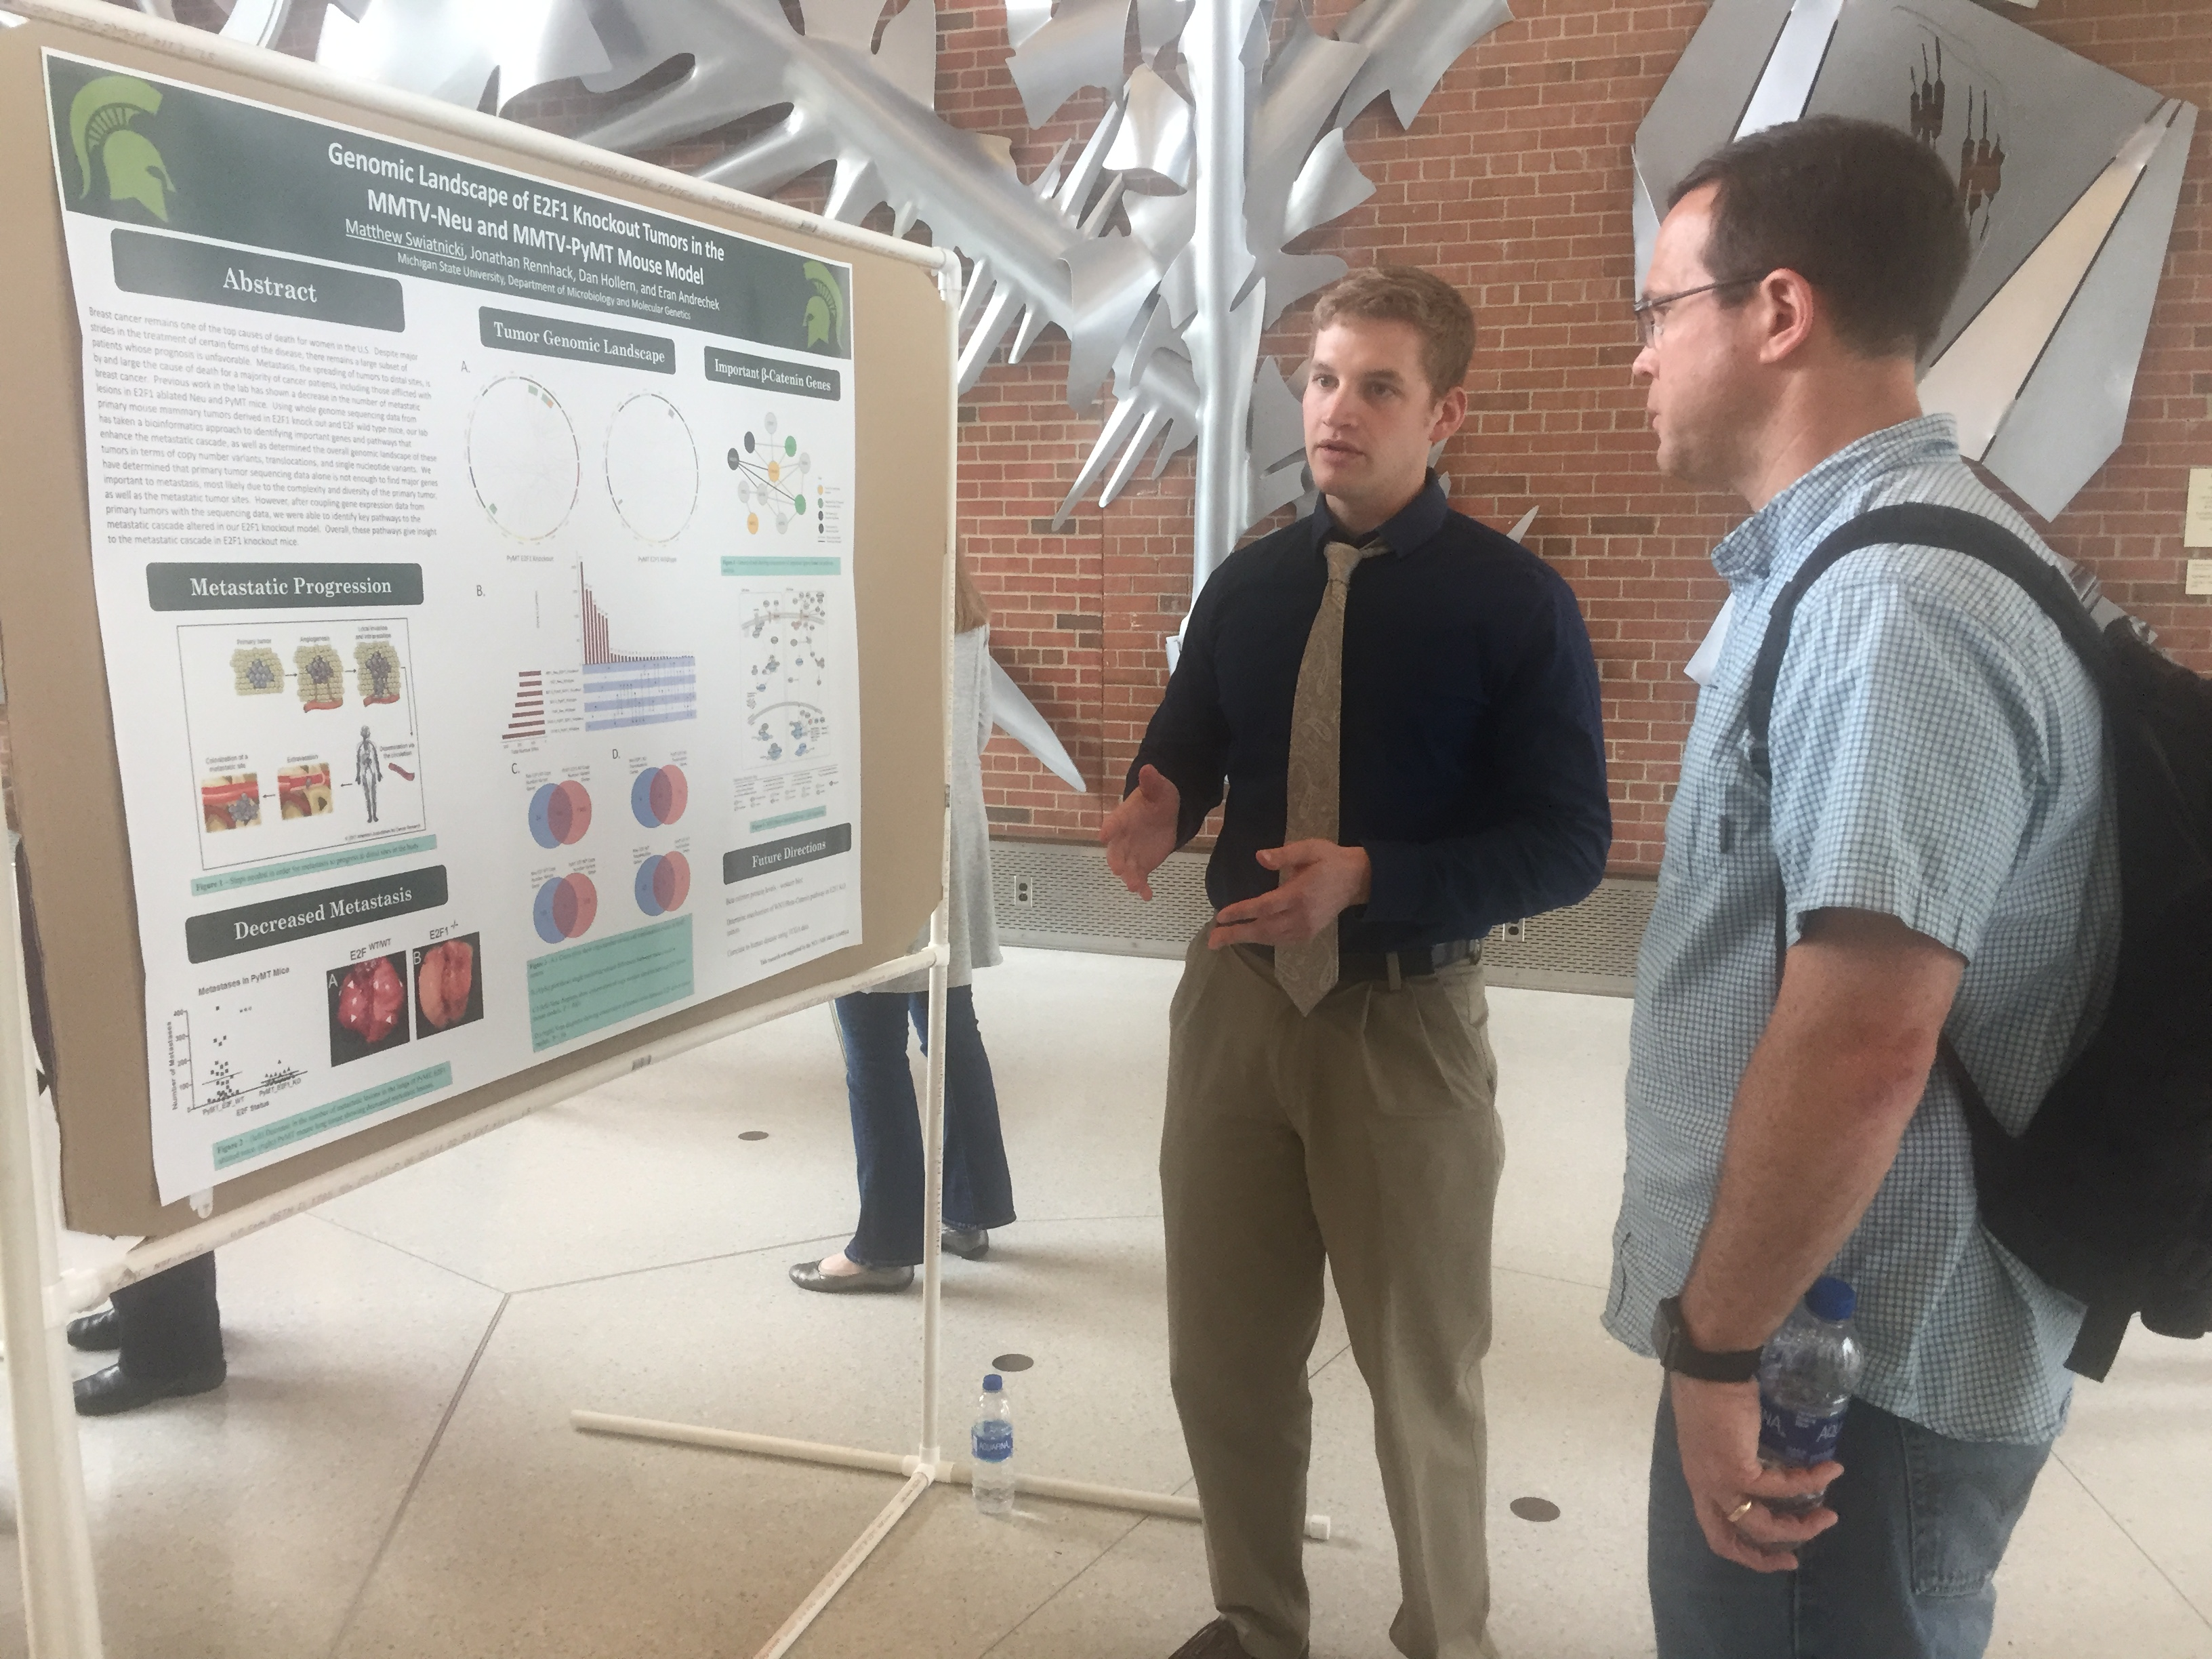 MSU Physiology retreat poster session